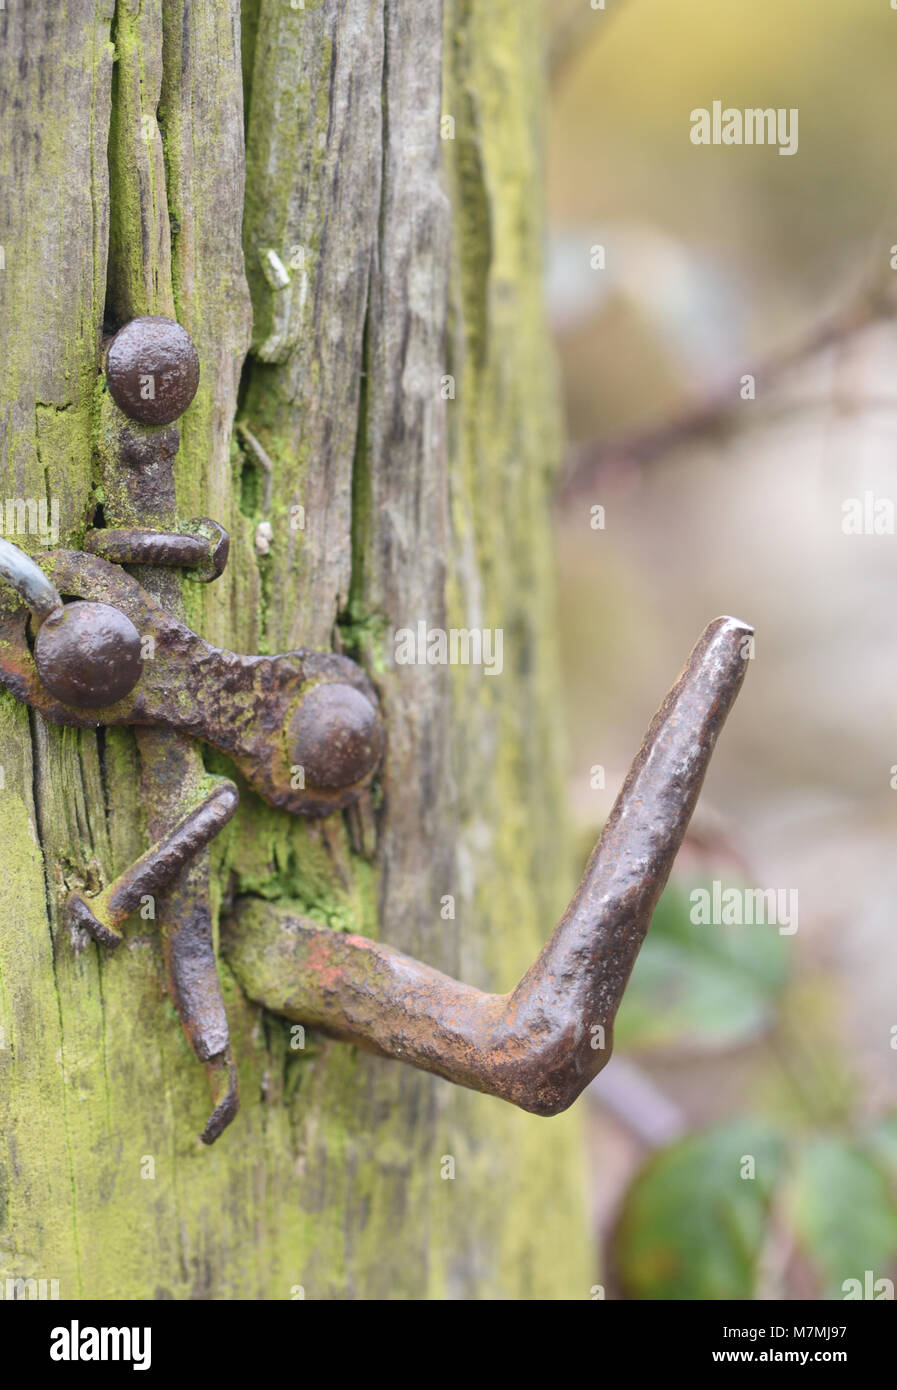 A well-worn ancient gate hinge and gate post. Stoney Middleton, Derbyshire, UK. - Stock Image